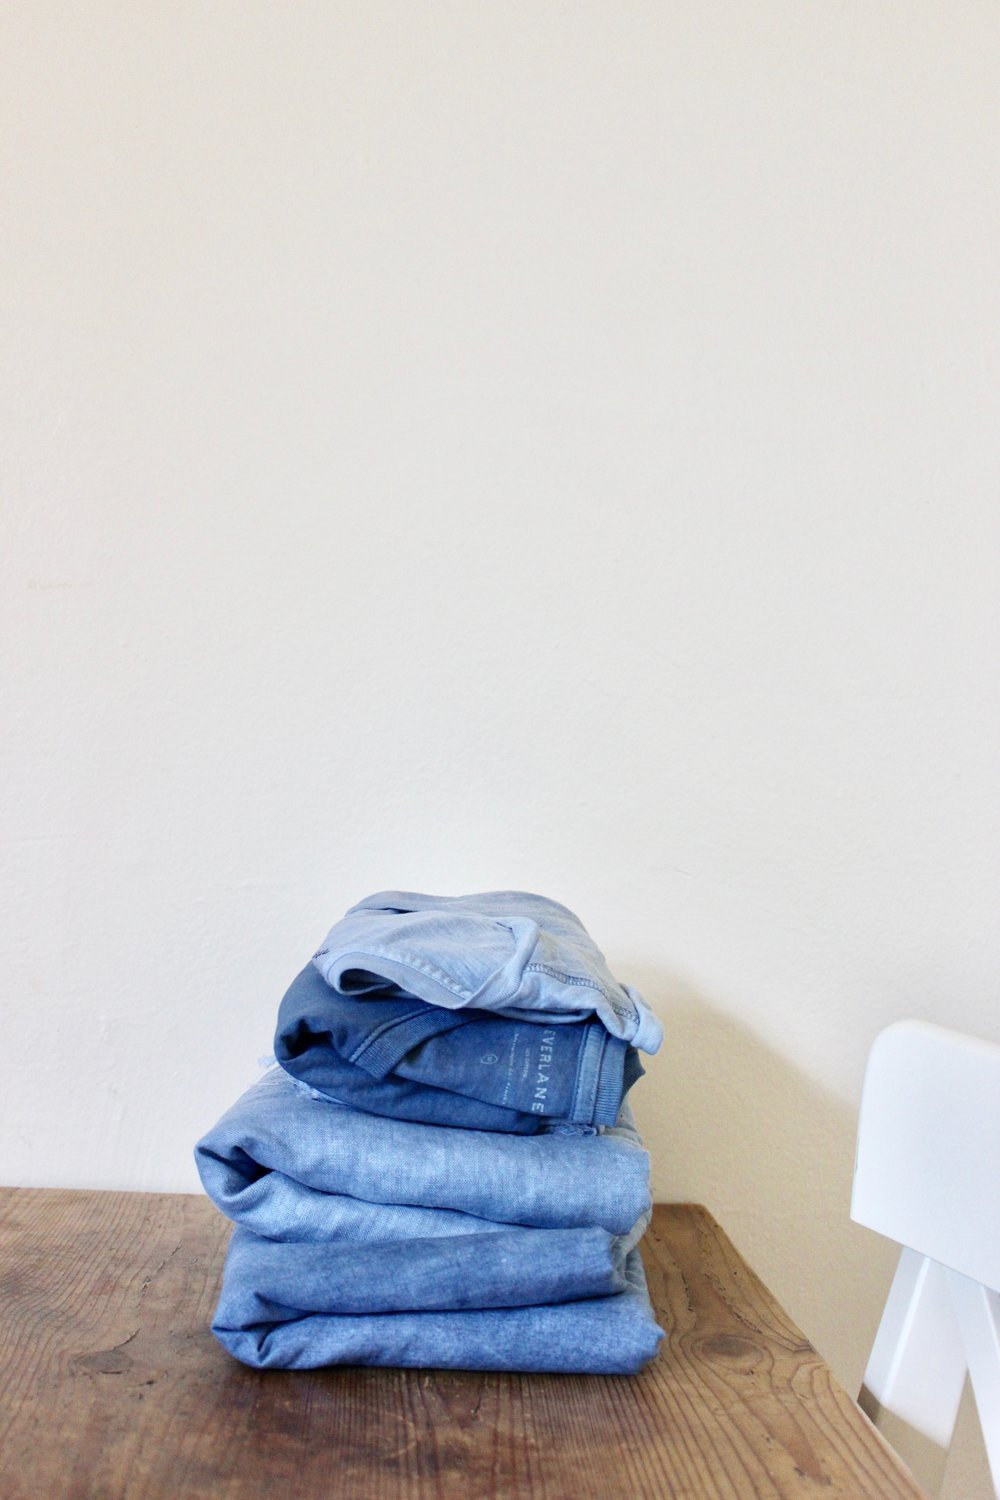 How to indigo dye clothing | Litterless